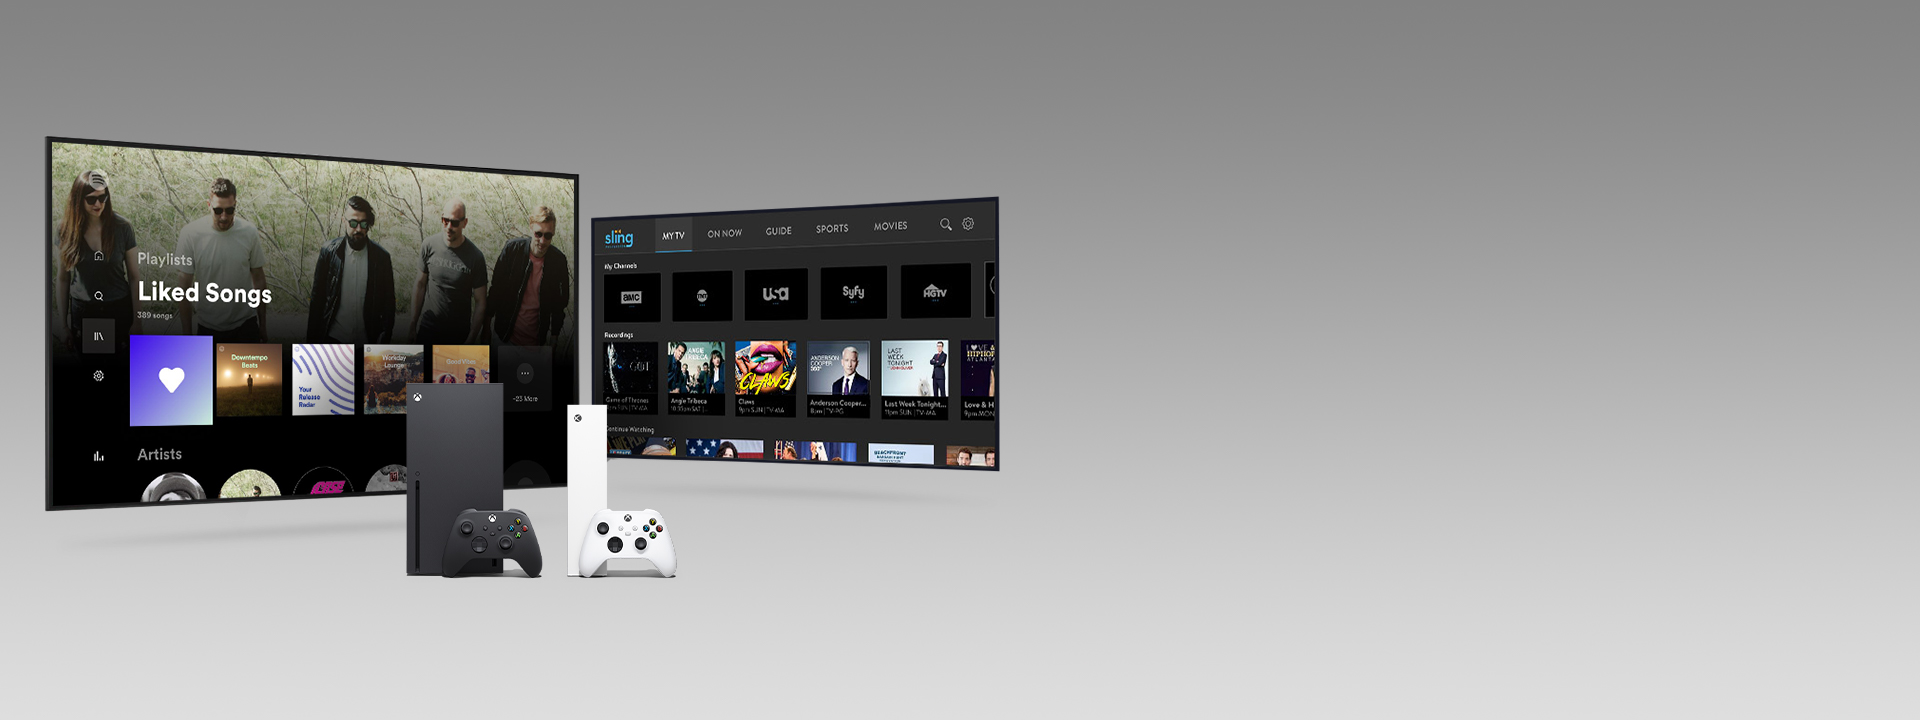 An Xbox Series X and Series S with controllers in front of two television screens featuring app user interfaces.